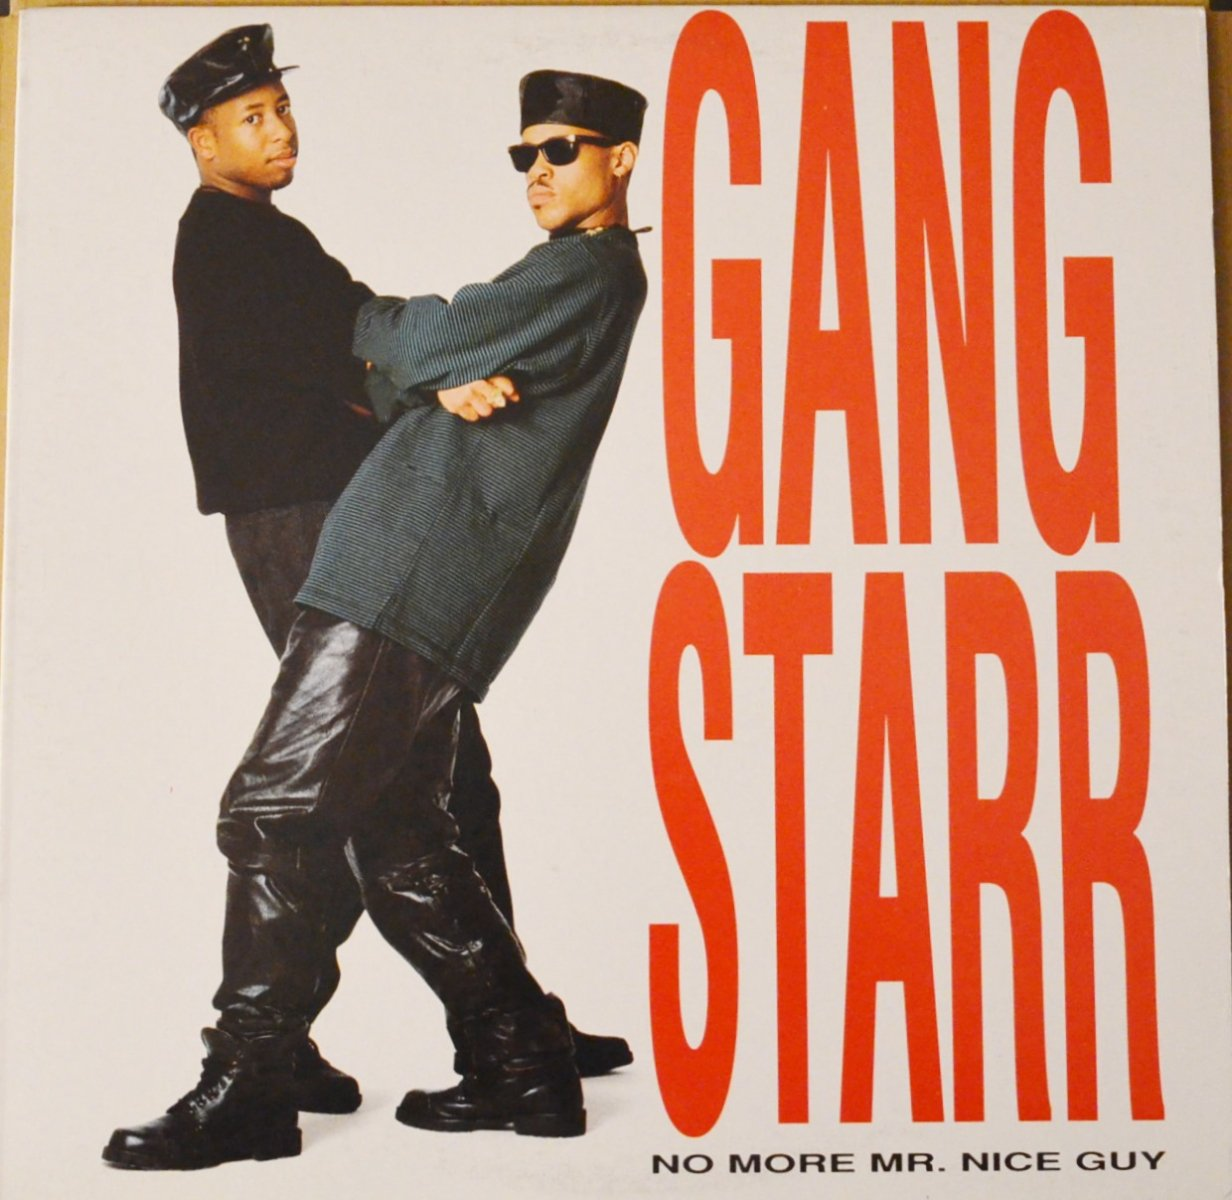 GANG STARR ‎/ NO MORE MR. NICE GUY (1LP)